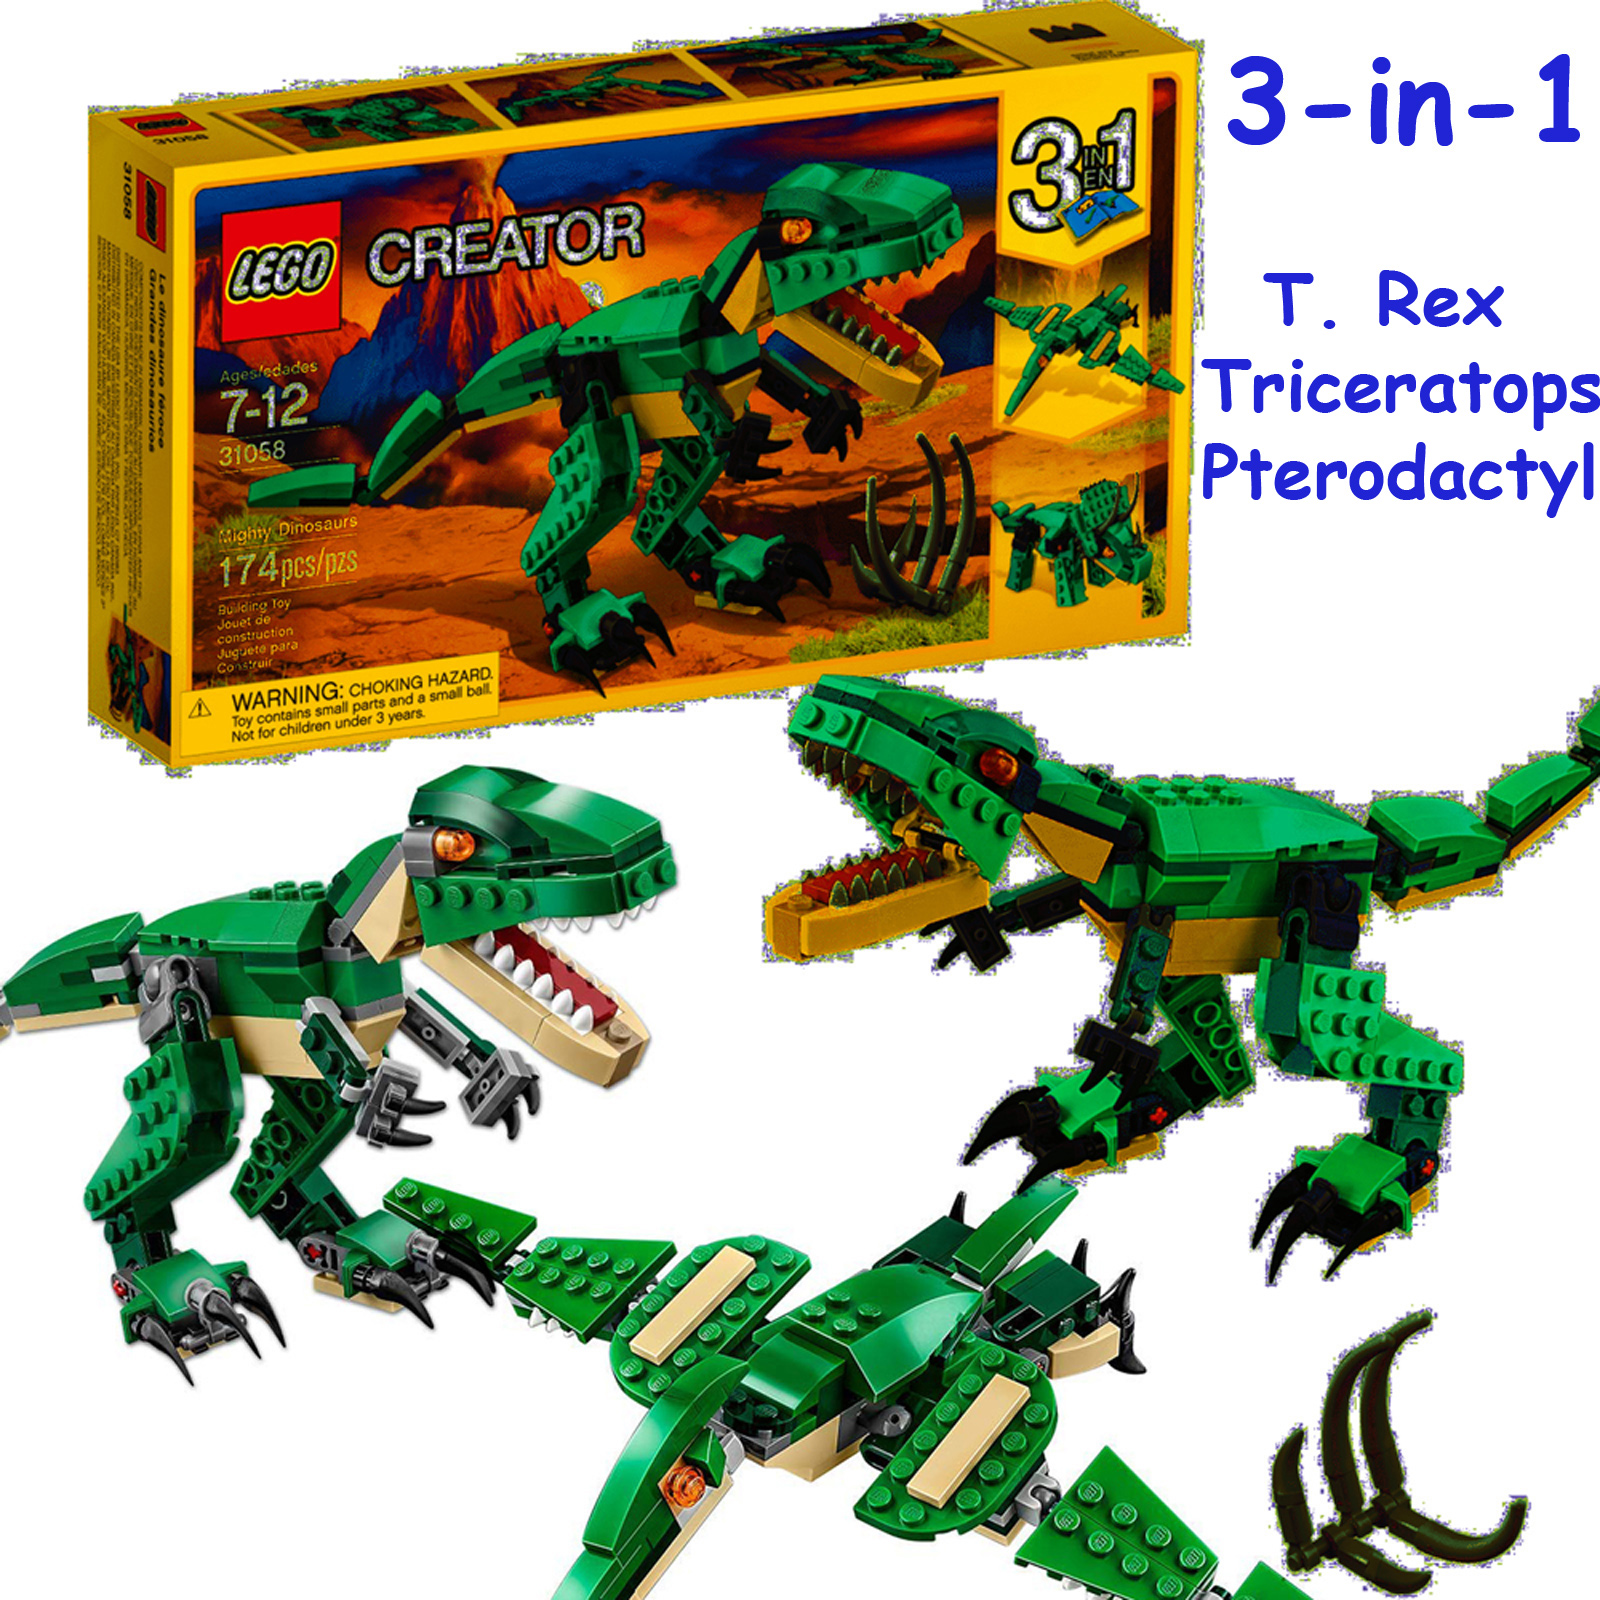 Lego Creator 31058 Mighty Dinosaurs 3 In 1 T Rex Or Triceratops Or